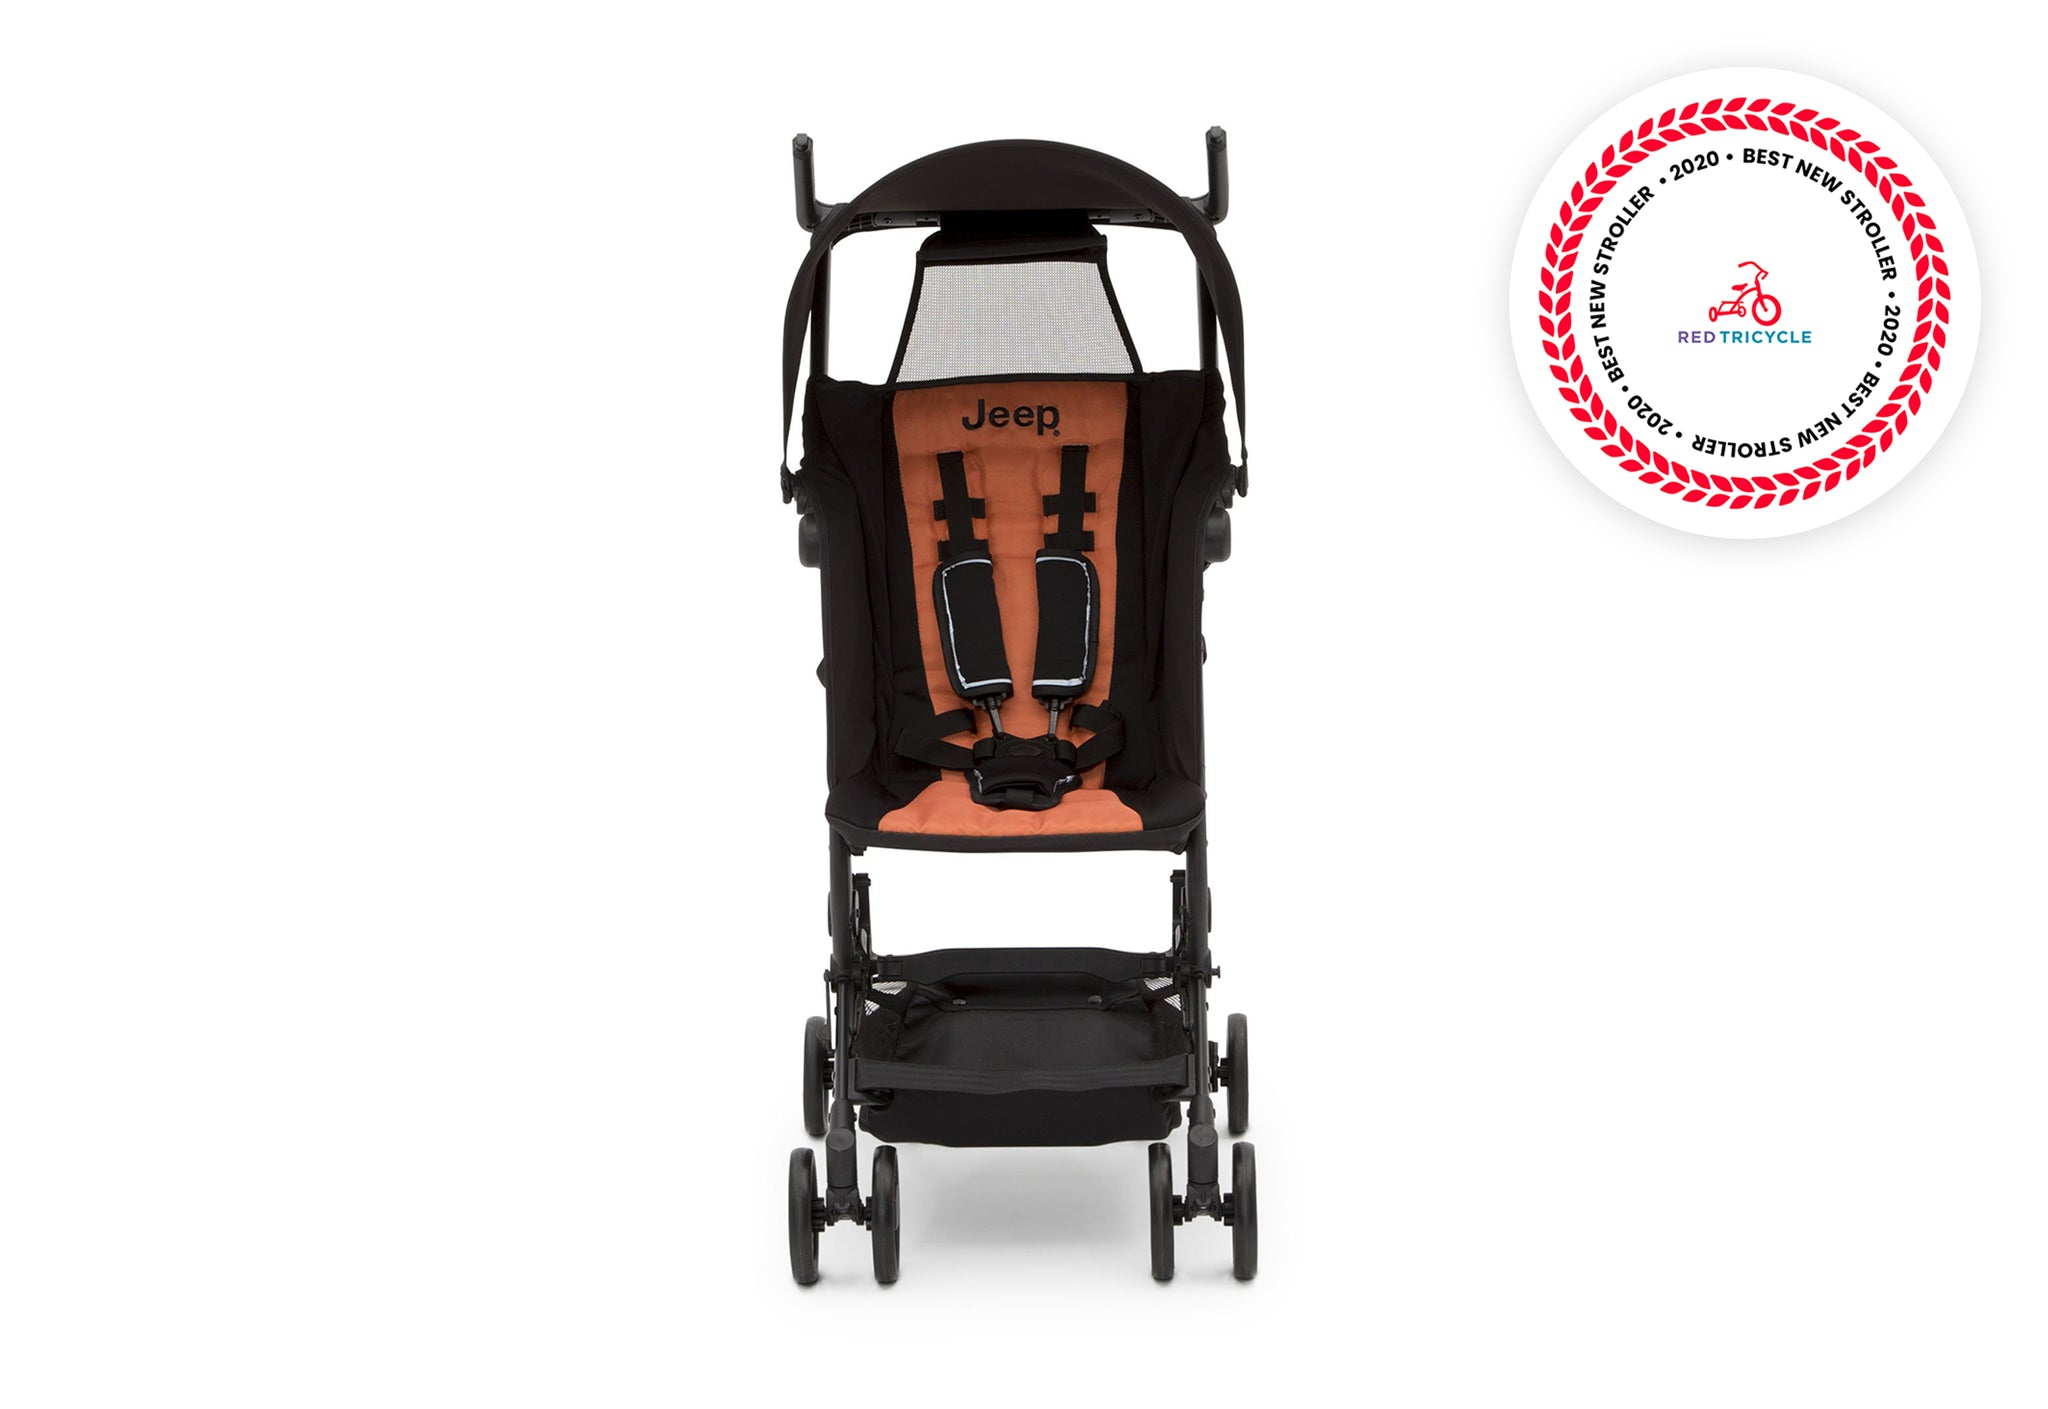 Jeep® Clutch Plus Travel Stroller with Reclining Seat Black with Orange (2183), Front View with reclining seat